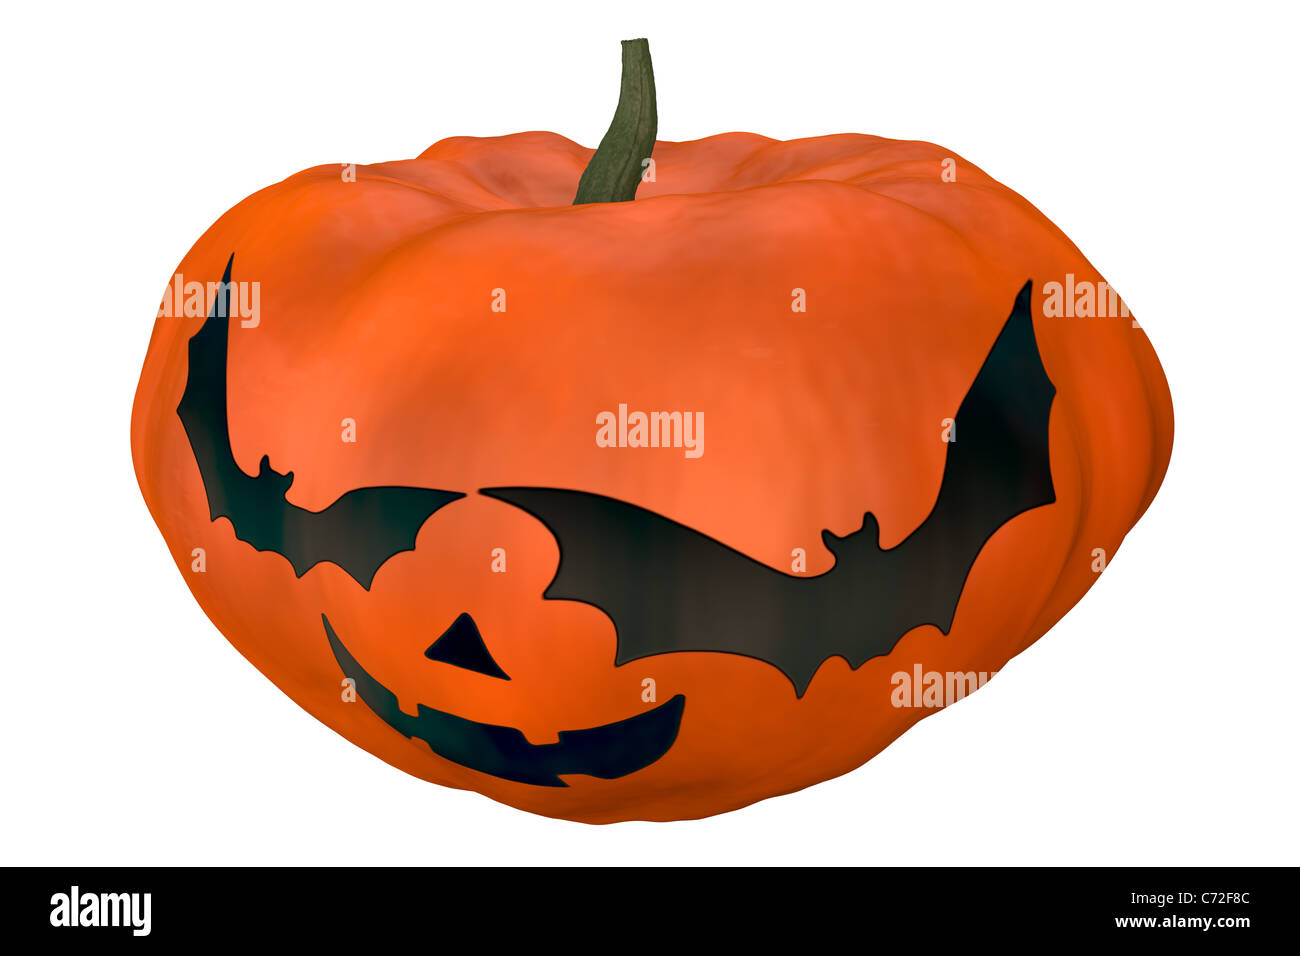 high quality rendering of hallo-ween pumpkin with spooky face ...